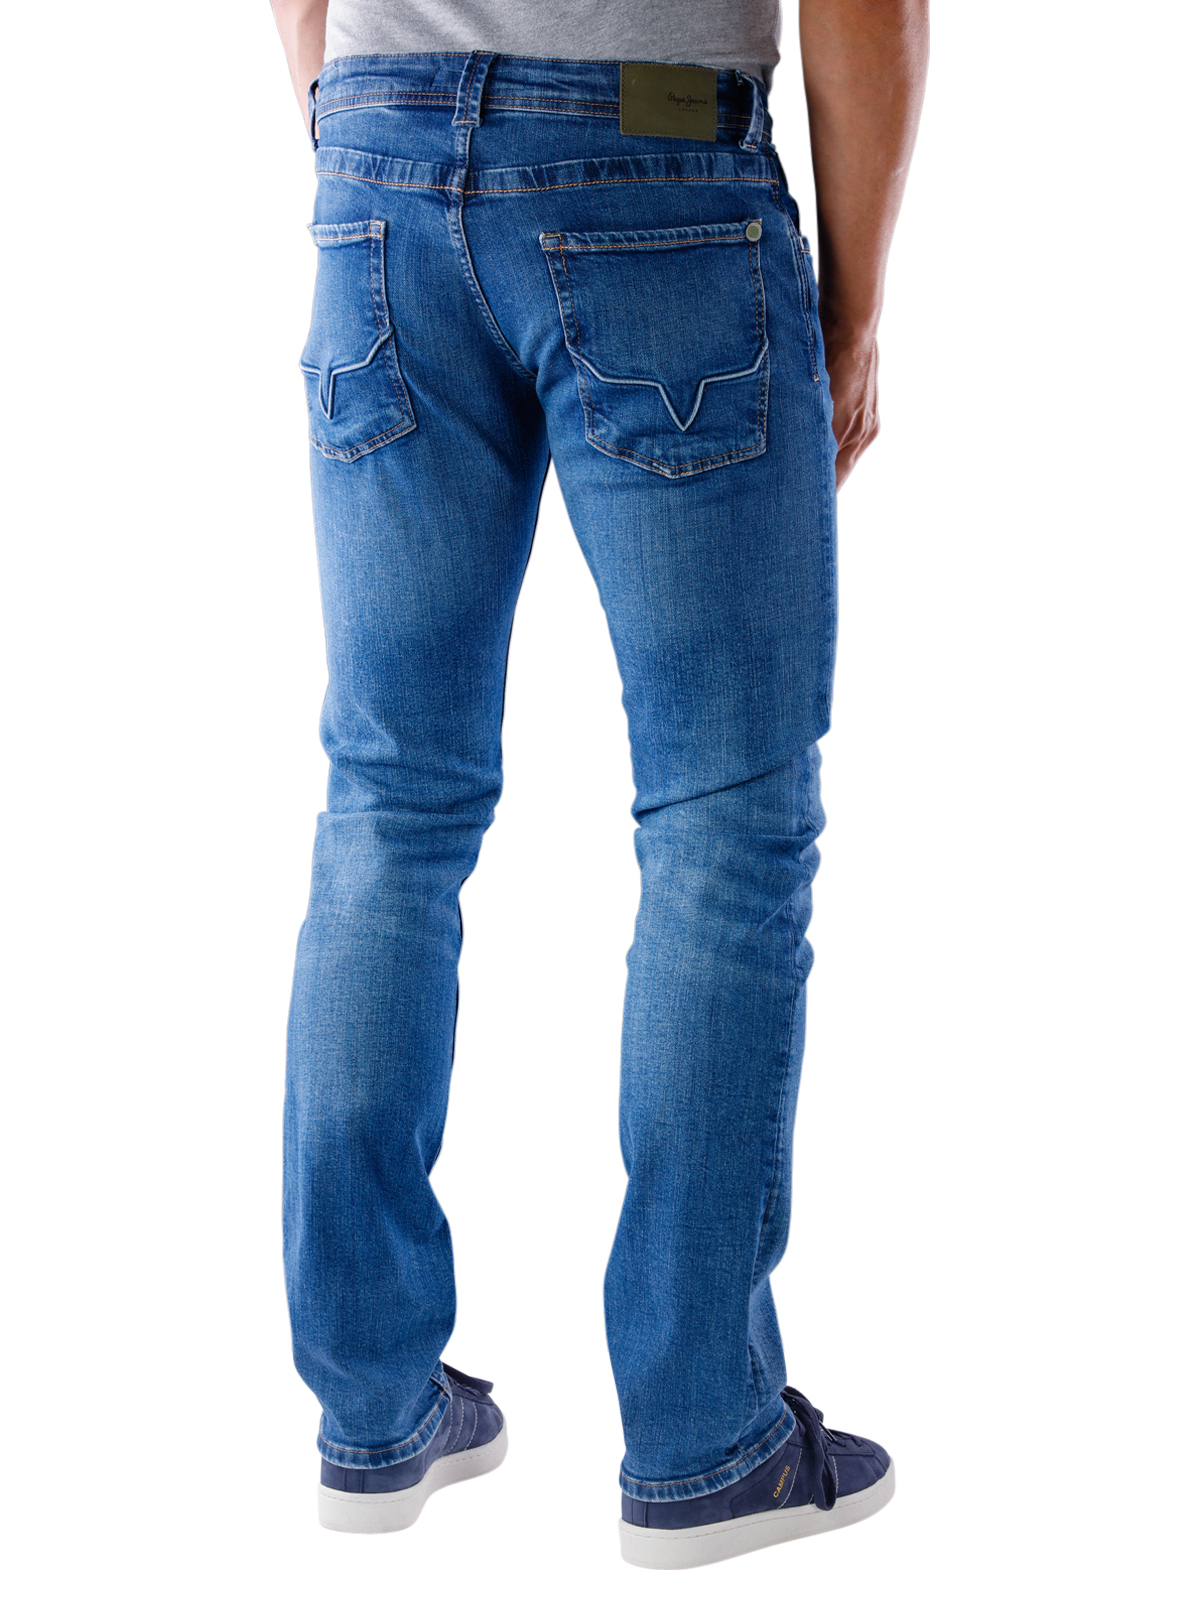 2fa2a01f McJeans.ch - Fast Delivery | Pepe Jeans Cash Wiser Wash medium used denim |  Free Shipping - Free Returns